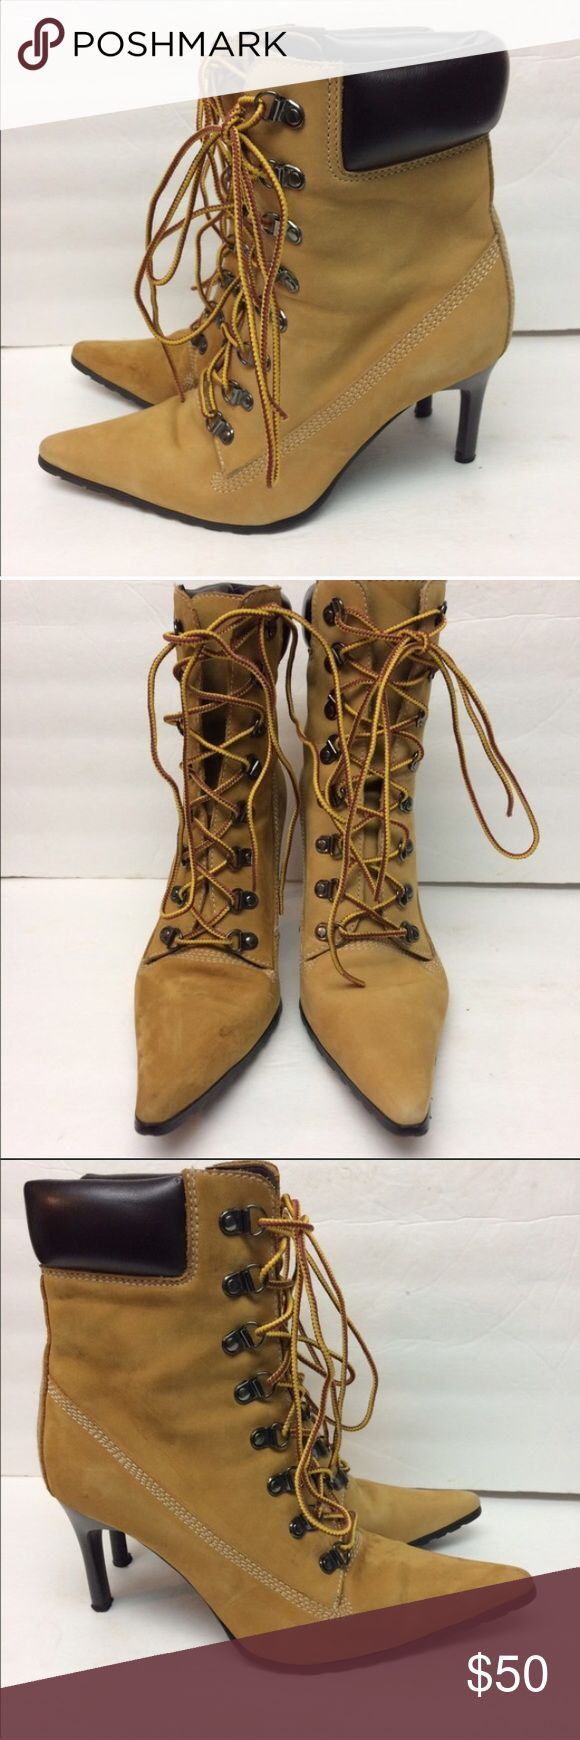 Nine West Heeled Timberland style (Not Timberland) brand new heeled boots!!! Timberland Shoes Ankle Boots & Booties